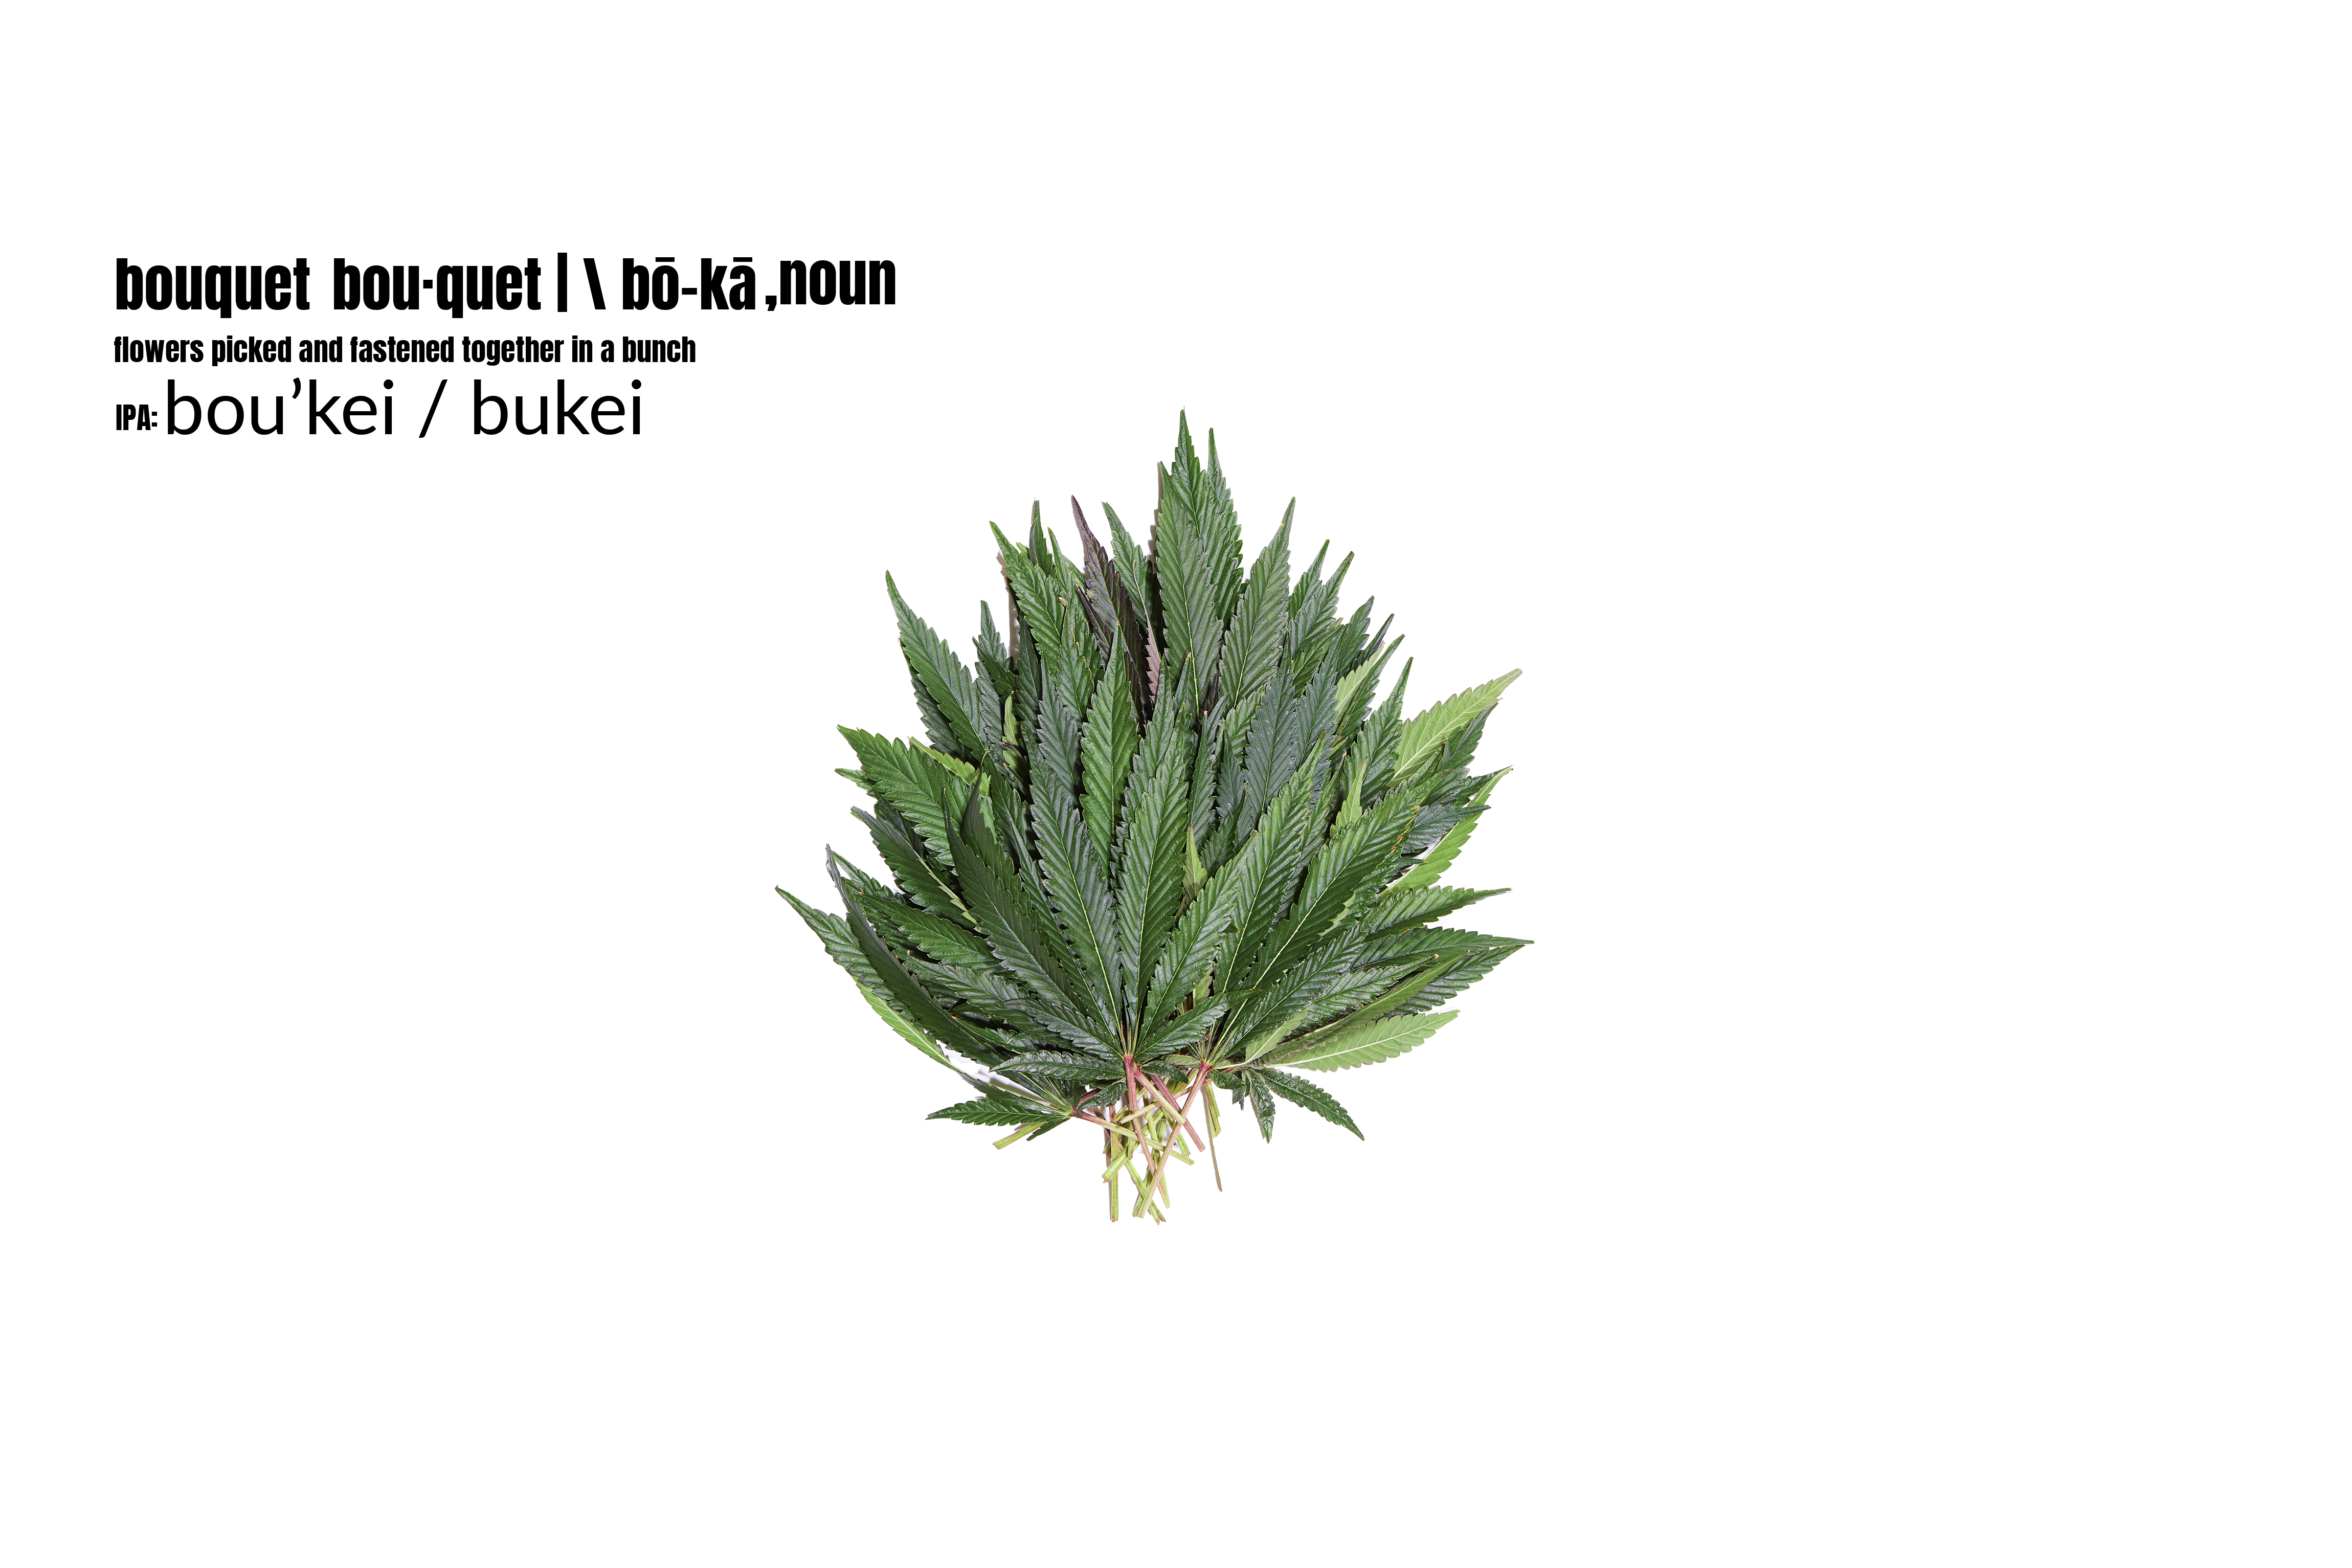 A bouquet of cannabis leaves